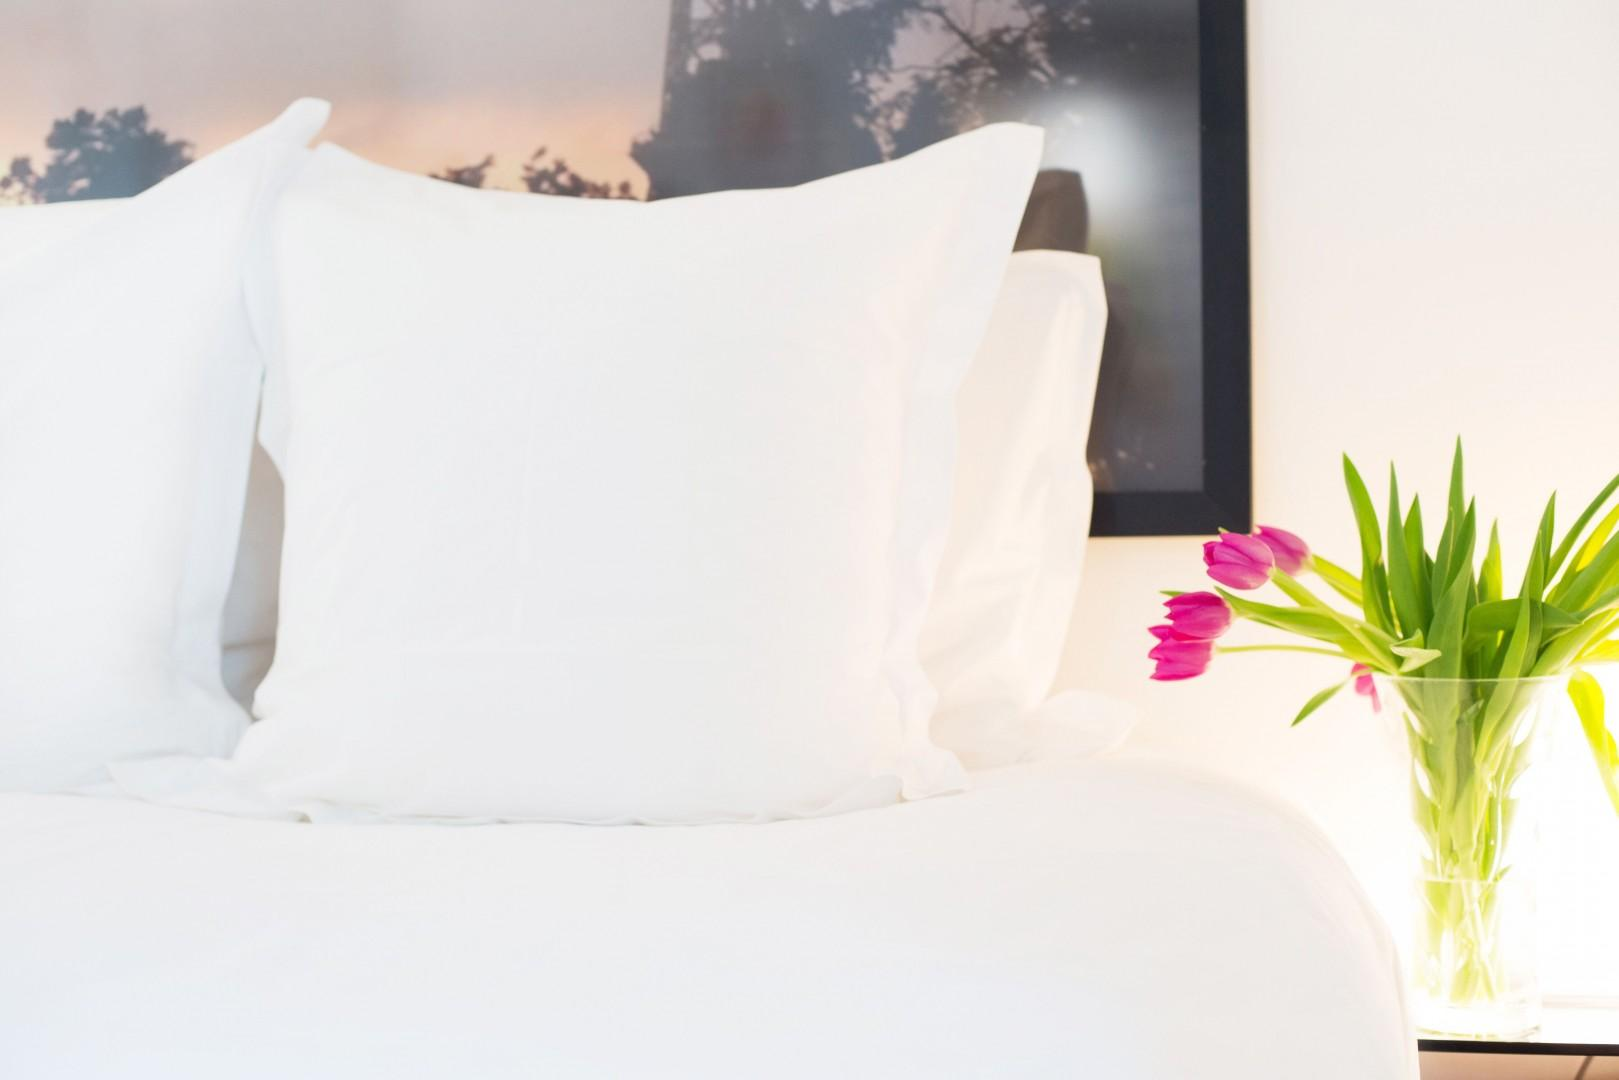 Decorate your bedroom with fresh flowers from local florists.